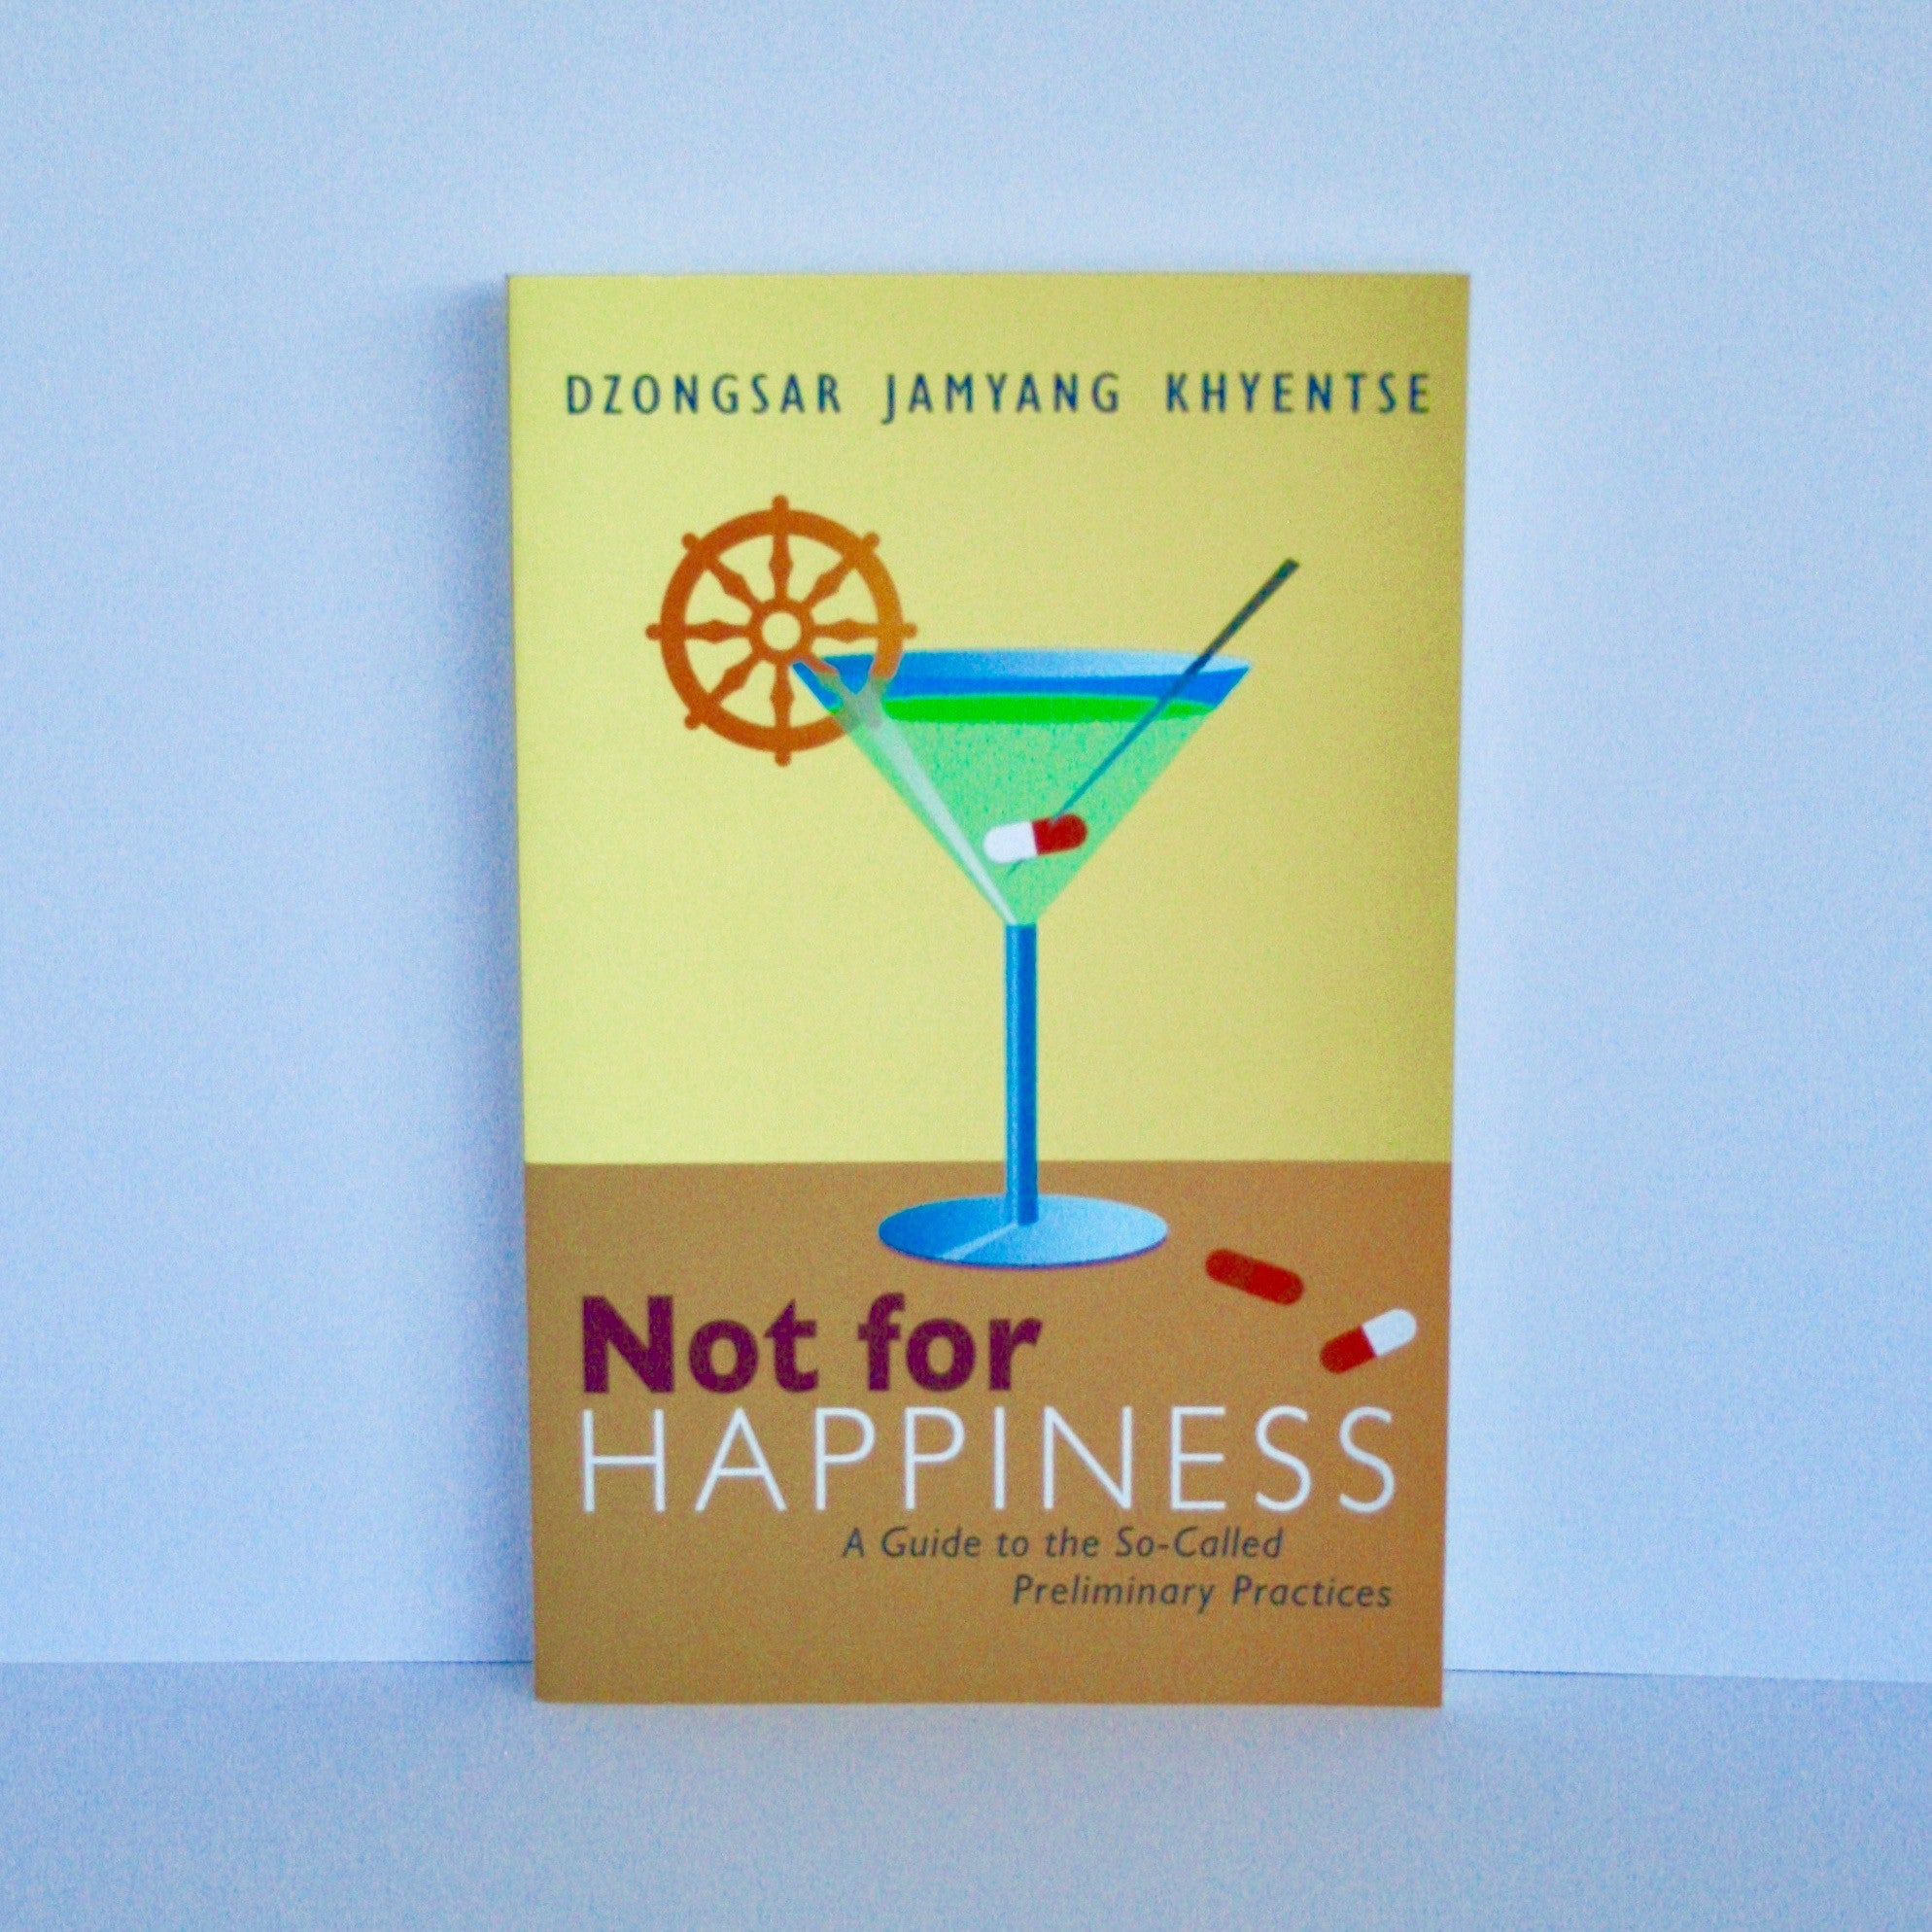 Not for Happiness - A Guide to the So-Called Preliminary Practices by Dzongsar Jamyang Khyentse